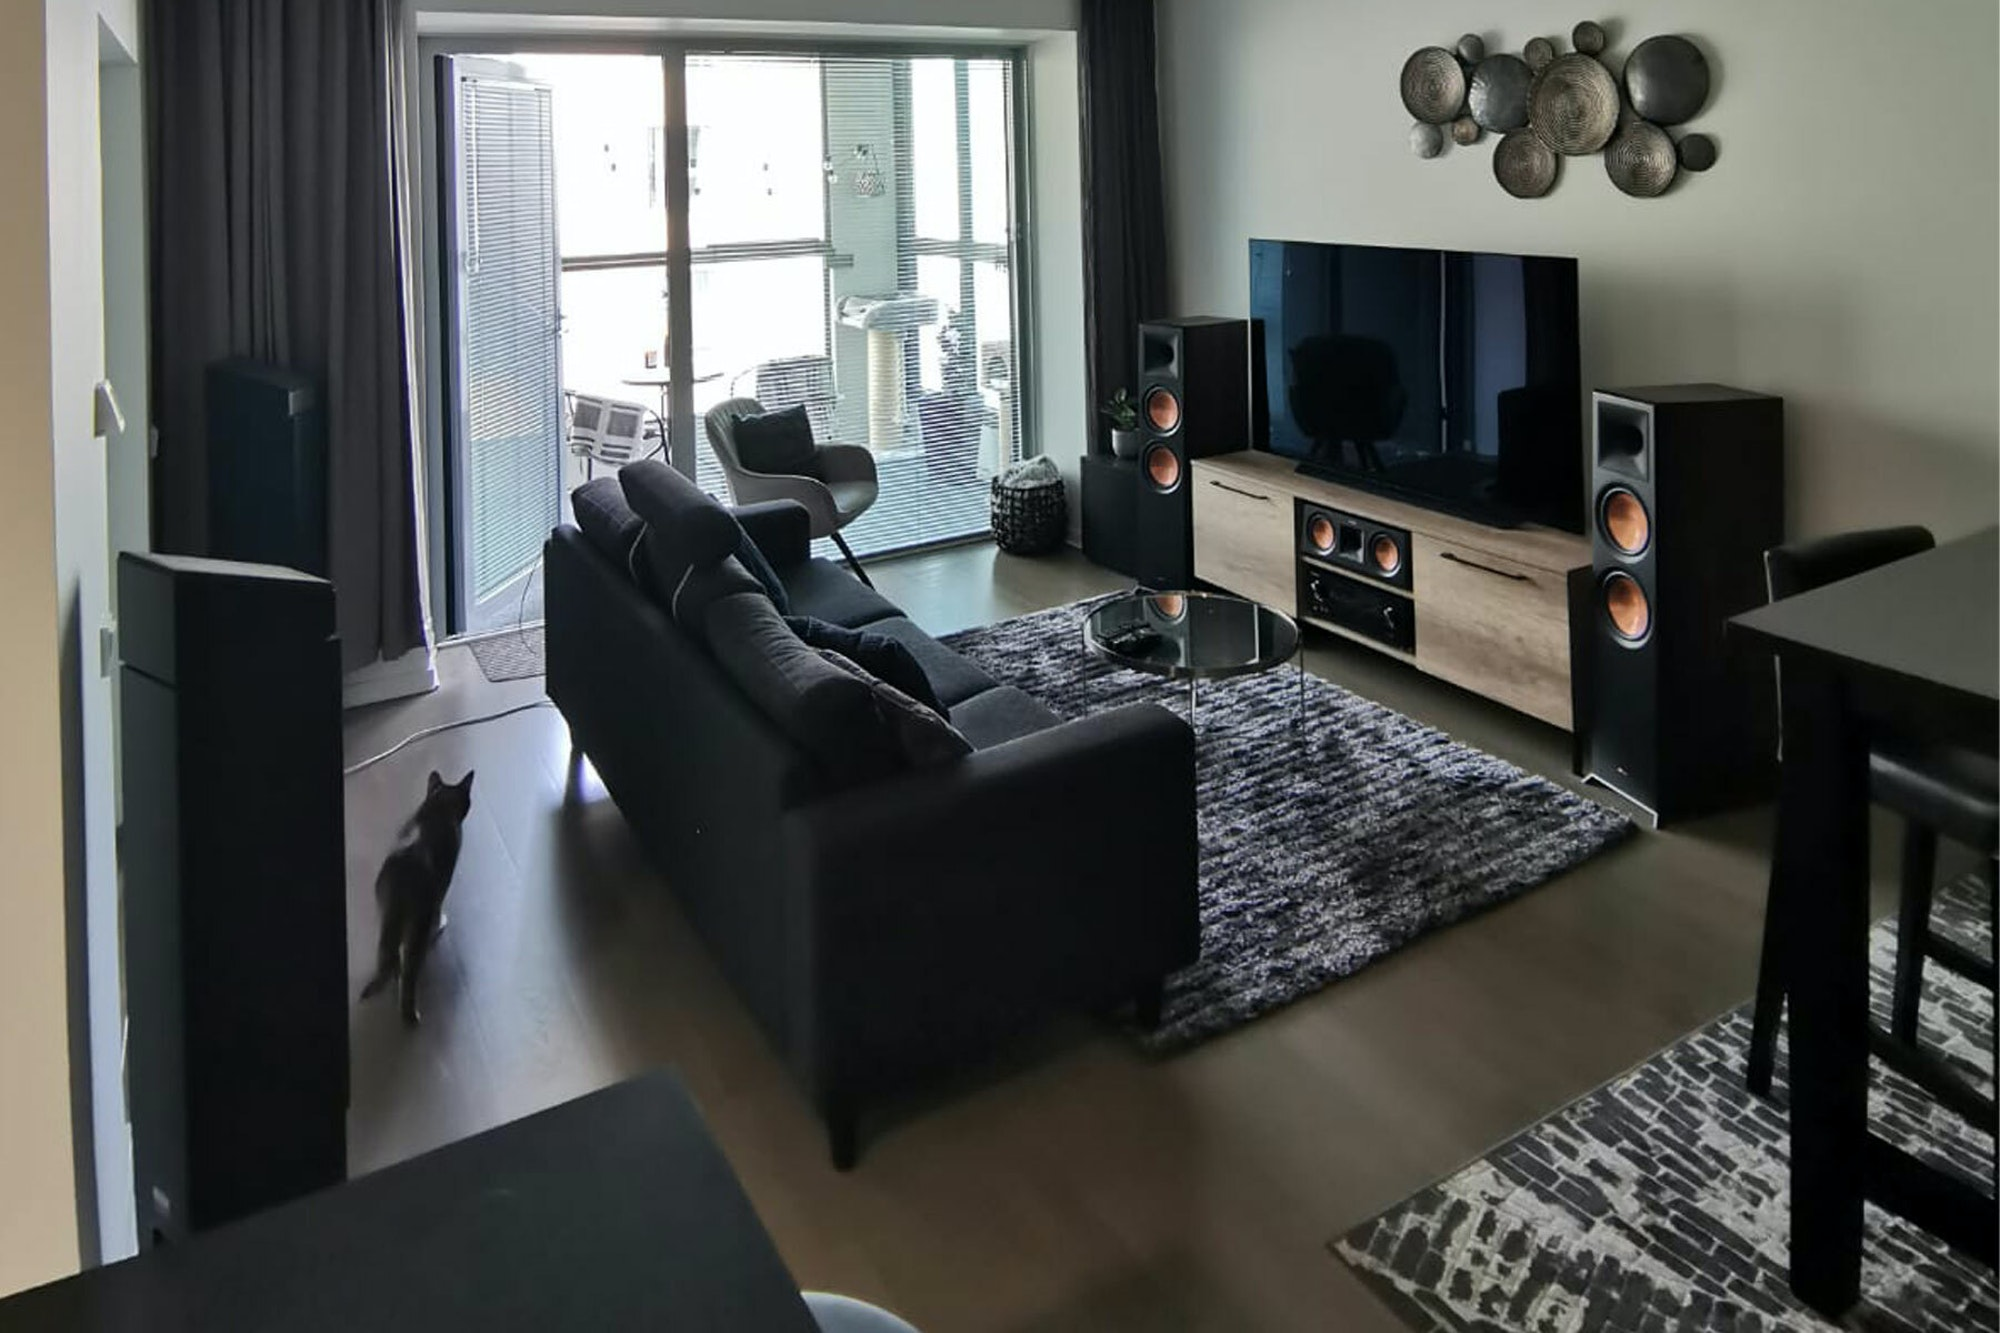 Finnish apartment with Klipsch Jamo speakers around a TV with area rugs